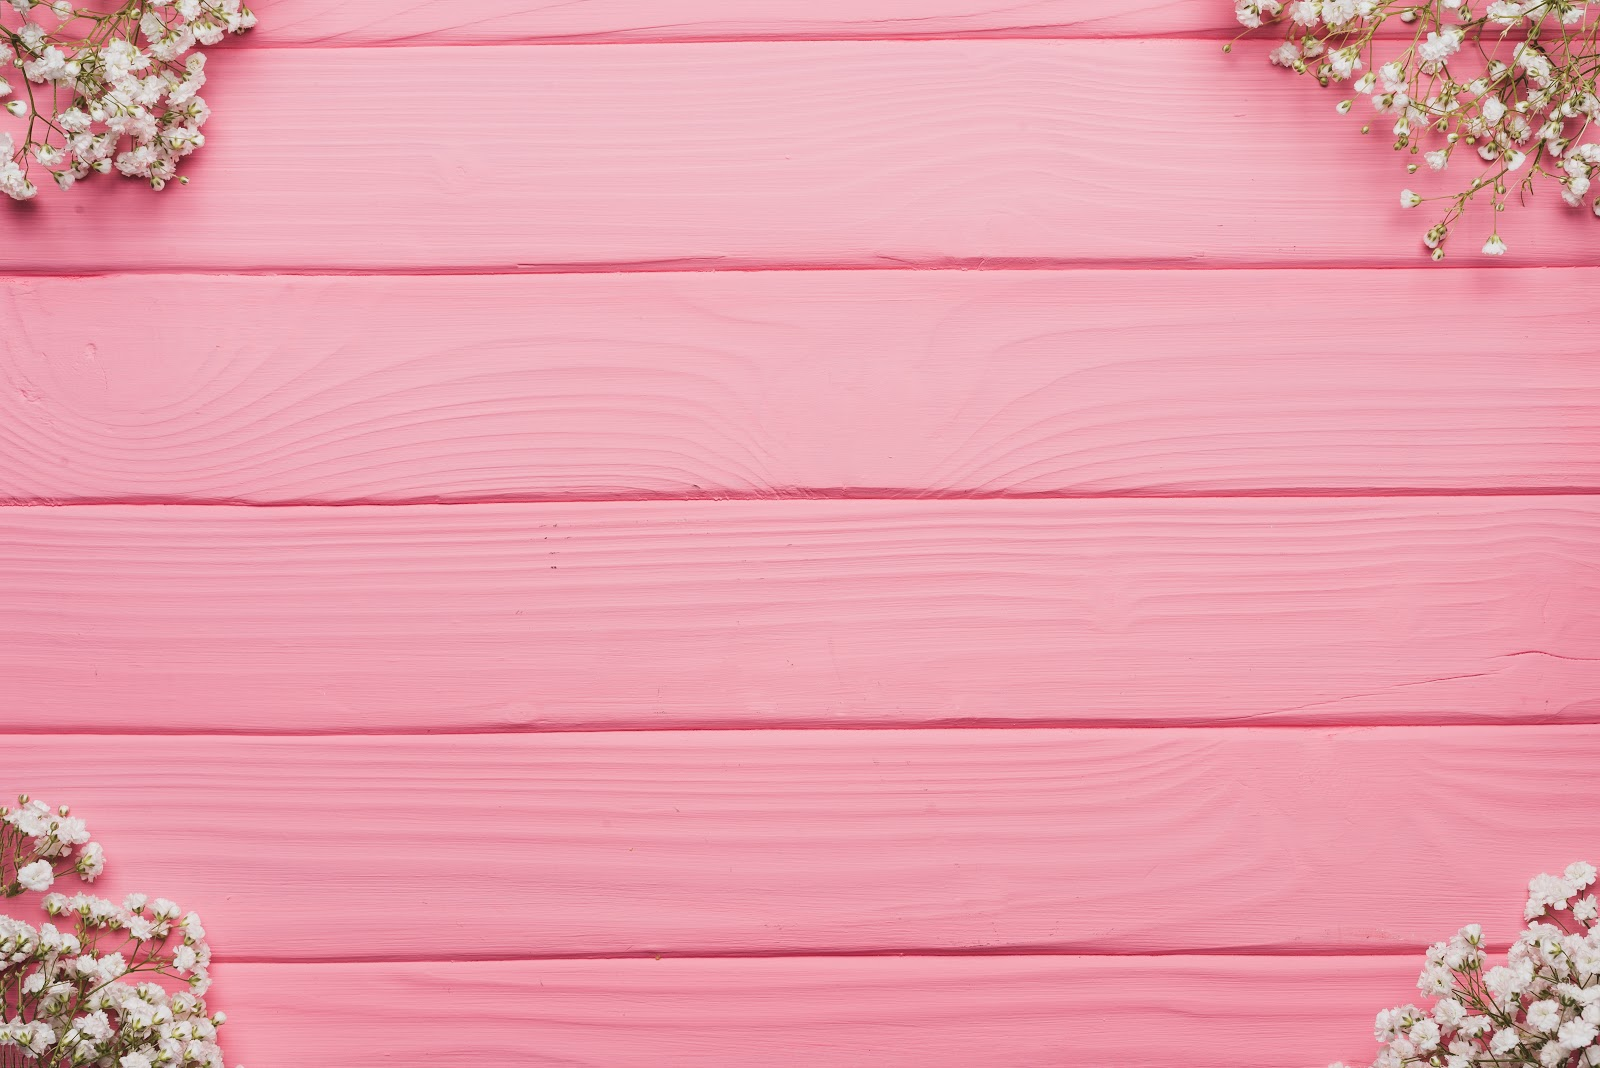 White Petaled Flowers on Pink Wooden Table